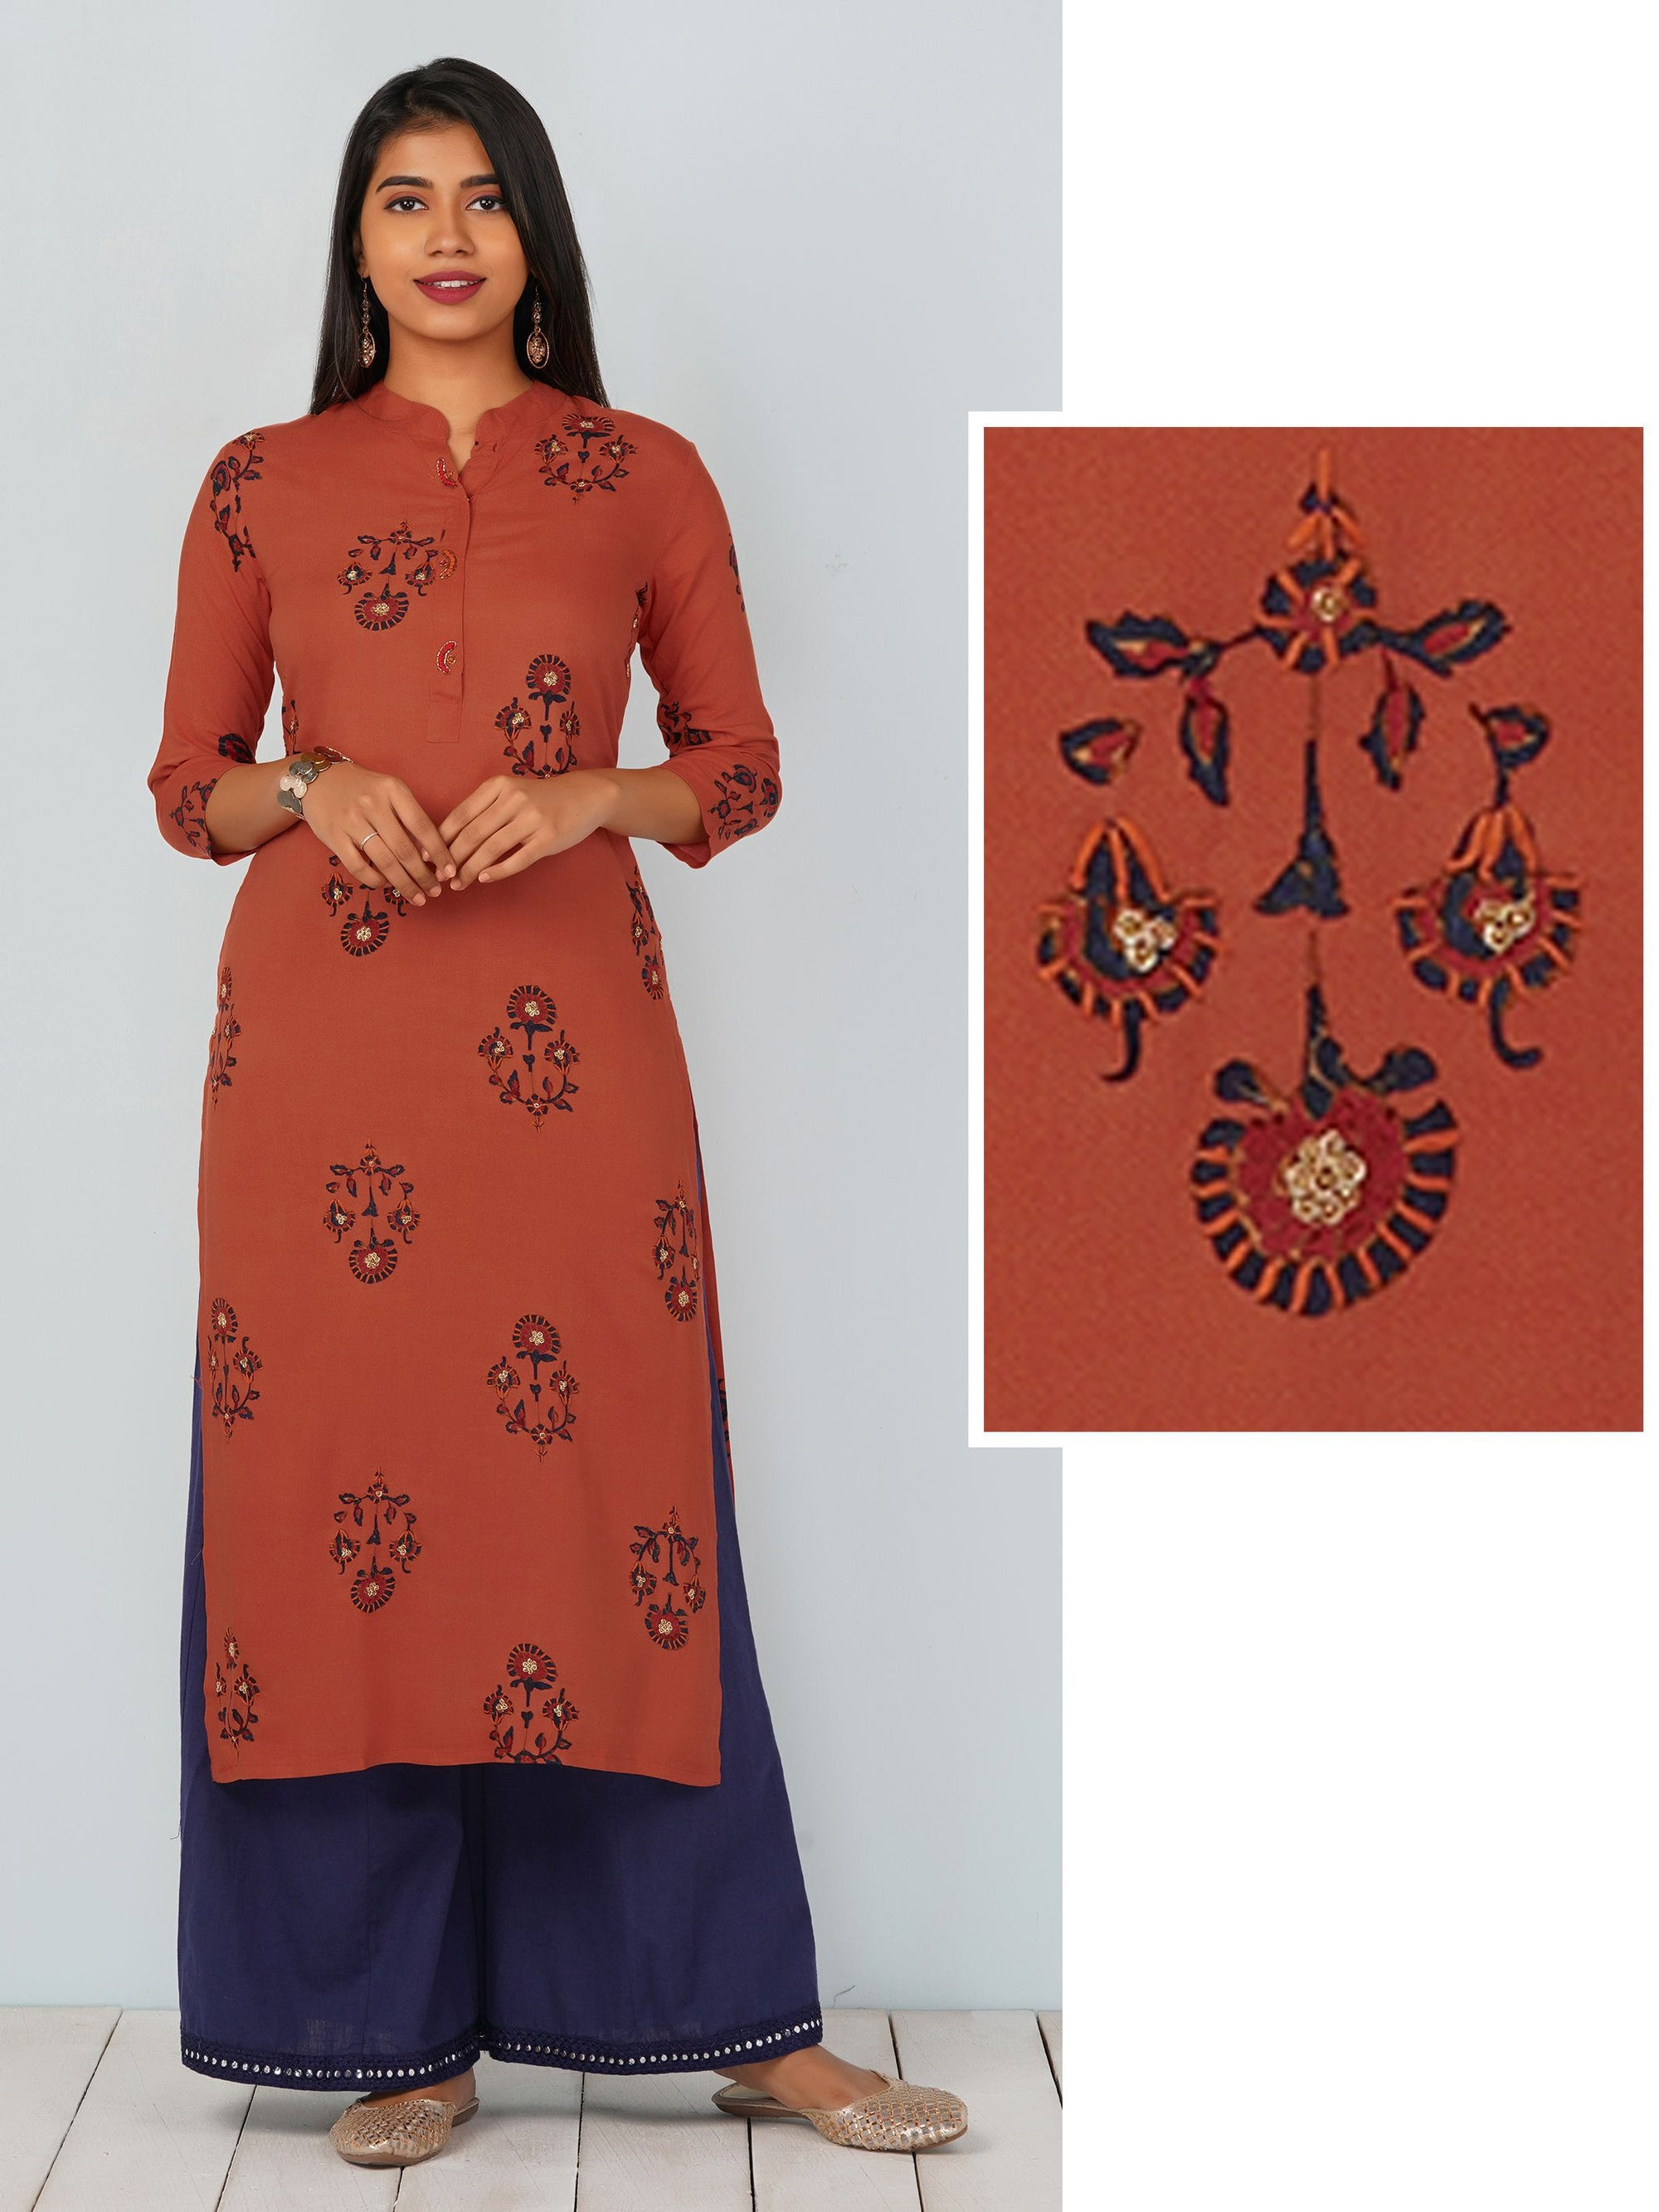 Zardosi Enhanced Floral Printed Kurti - Rust Orange